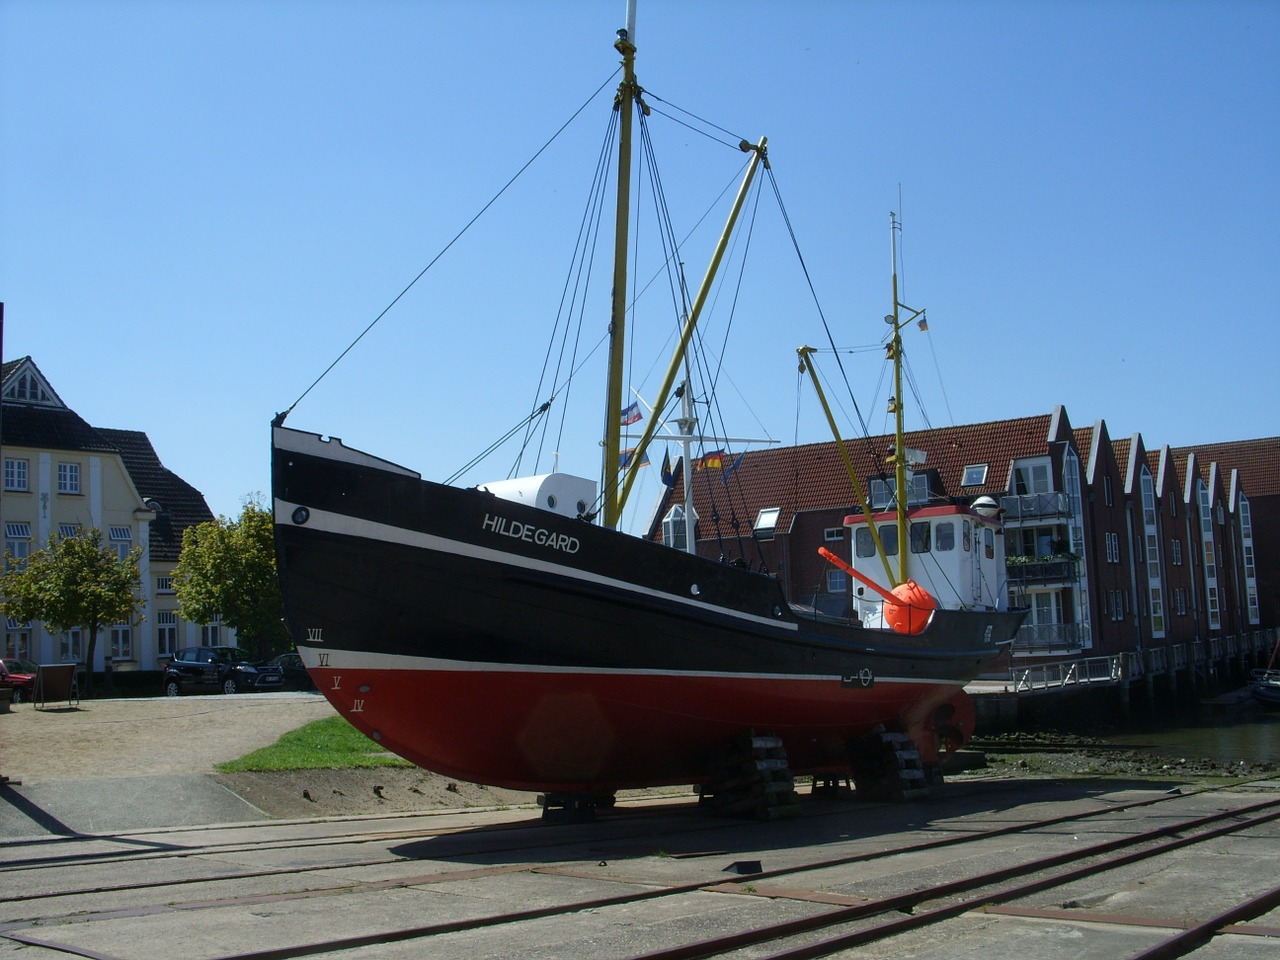 hildegard ship husum free photo